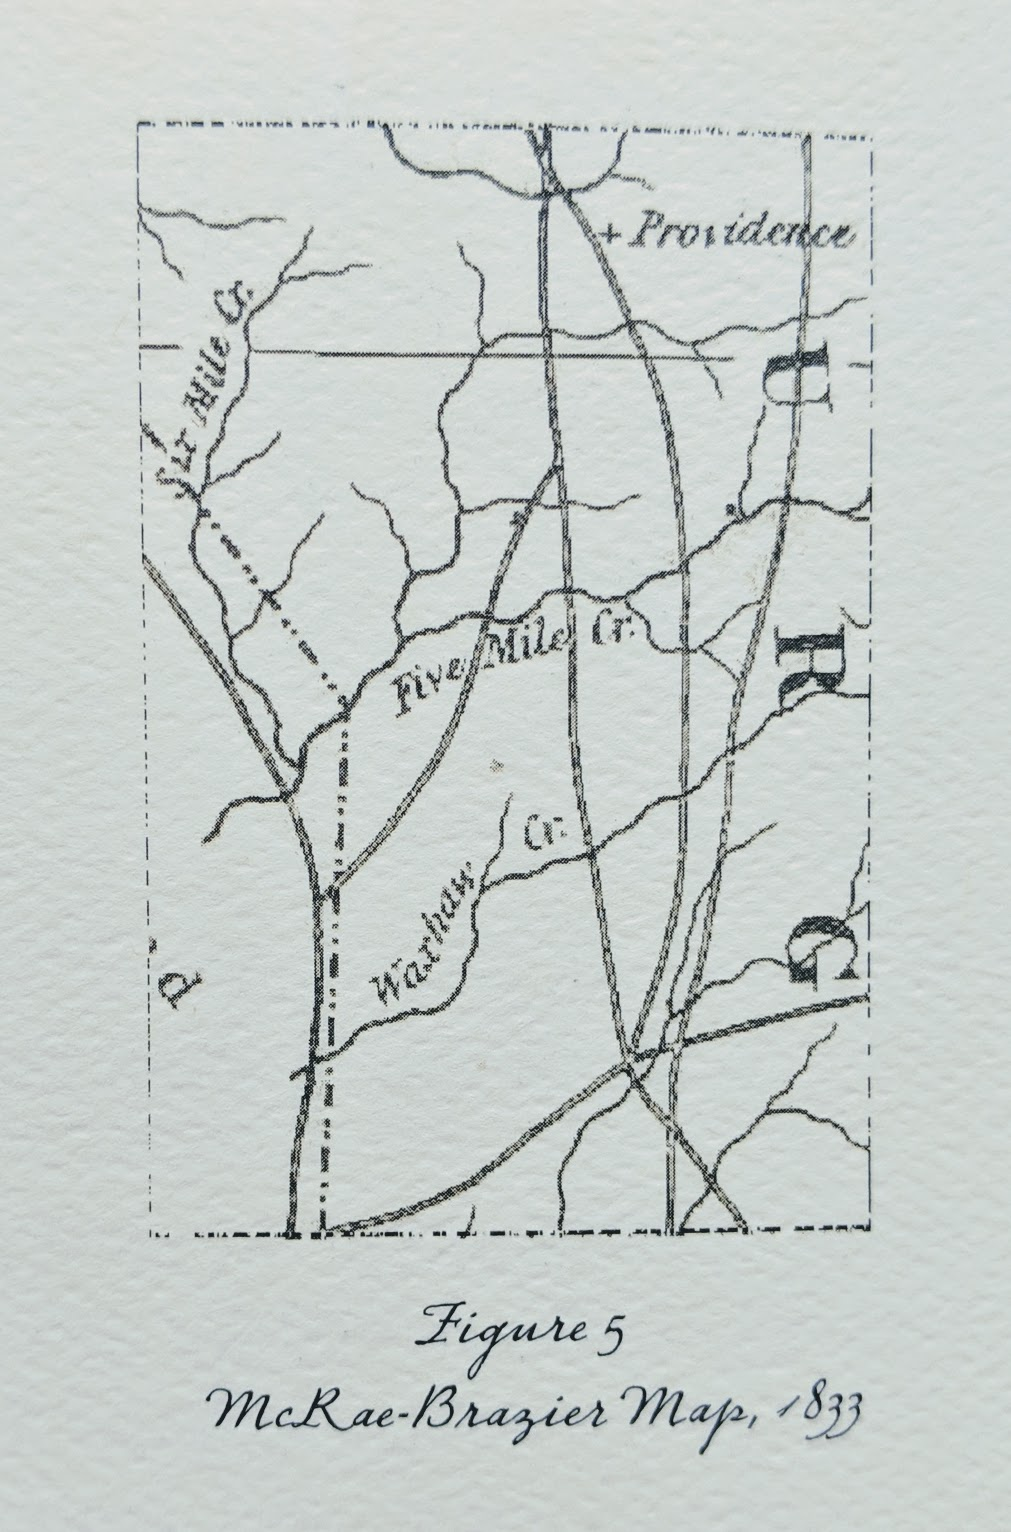 On the 1833 McRae-Brazier map, - We can see three of the eventual five roads com­ing together on the ridge between the West and East Forks of 12/Five Mile Creek (Figure 5, Left). Where these roads come together there is now a main entrance to Lawson. Of further interest is the fact that, though Providence Church appears on McRae-Brazier, Providence Road does not. Waxhaw still does not exist, and Matthews, by these mapmakers, was deemed unworthy of mentioning.